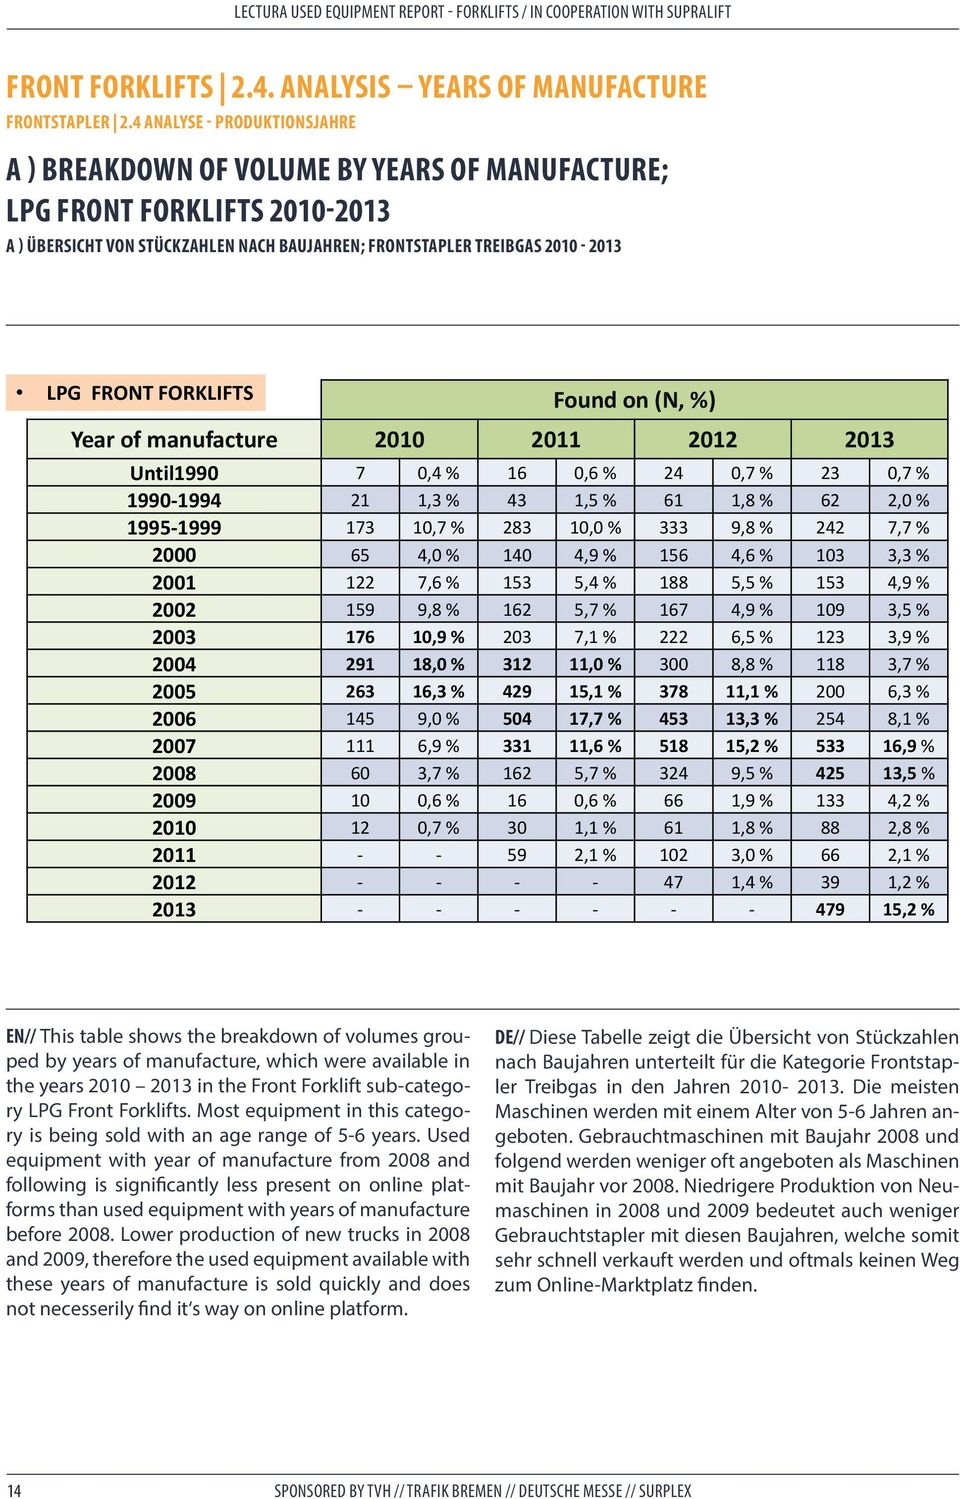 FORKLIFTS Found on (N, %) Year of manufacture 2010 2011 2012 2013 Until1990 7 0,4 % 16 0,6 % 24 0,7 % 23 0,7 % 1990 1994 21 1,3 % 43 1,5 % 61 1,8 % 62 2,0 % 1995 1999 173 10,7 % 283 10,0 % 333 9,8 %